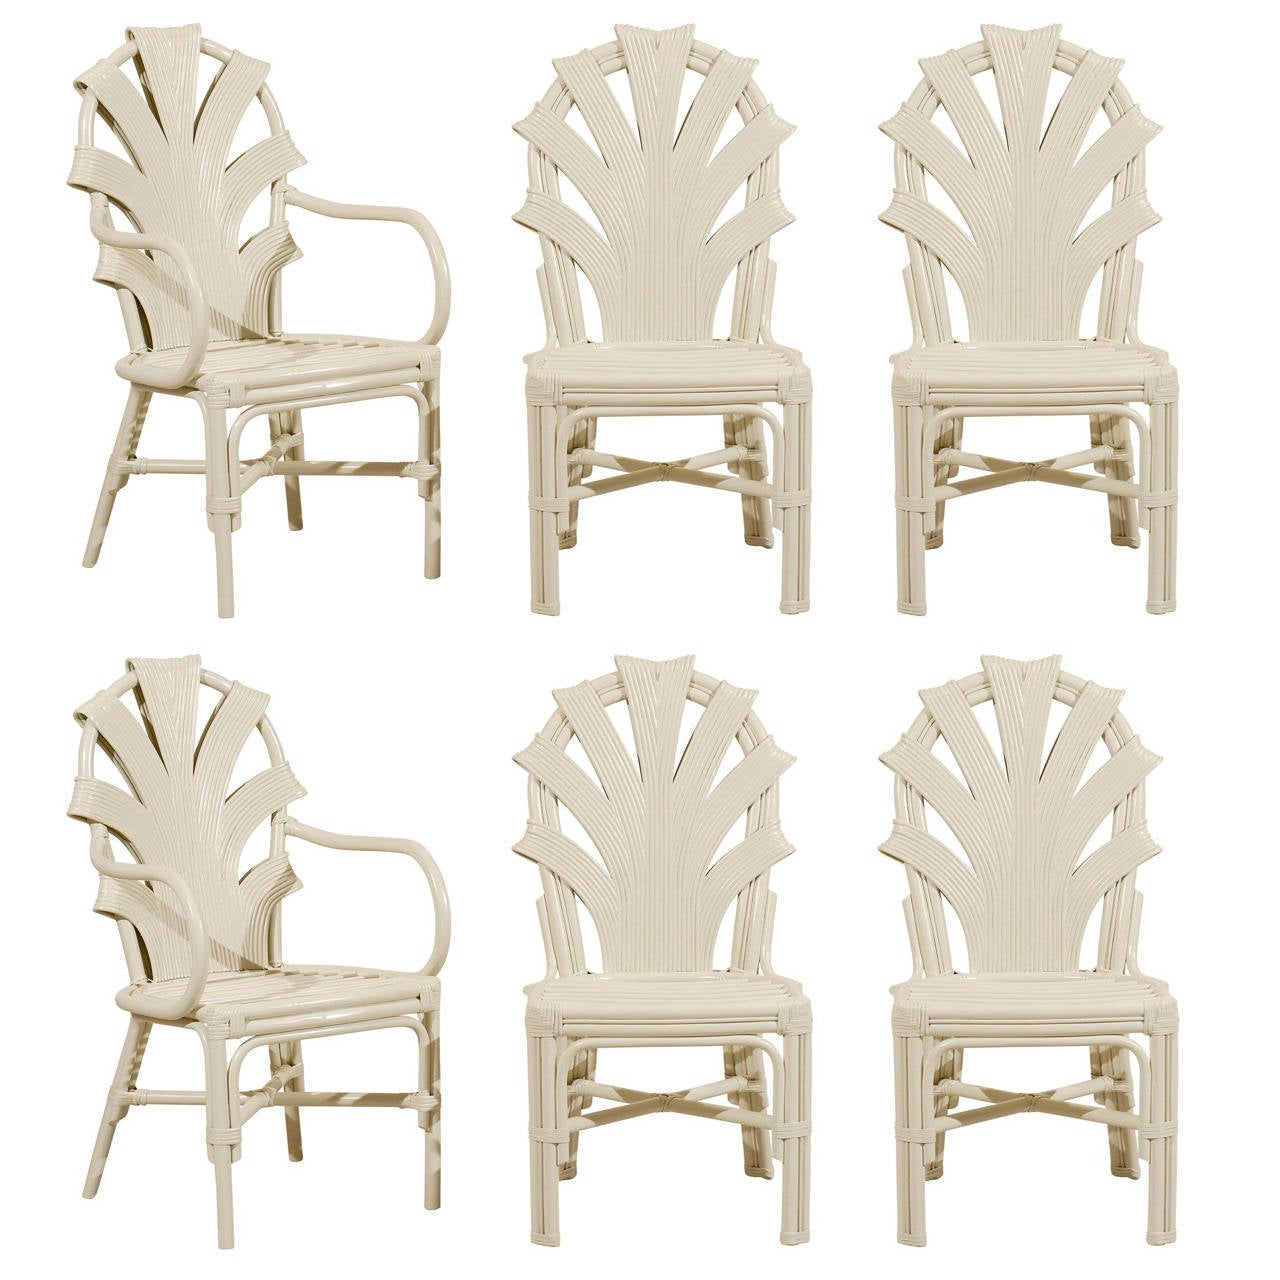 Vintage Rattan Chairs Exceptional Set Of Six Vintage Rattan Dining Chairs In